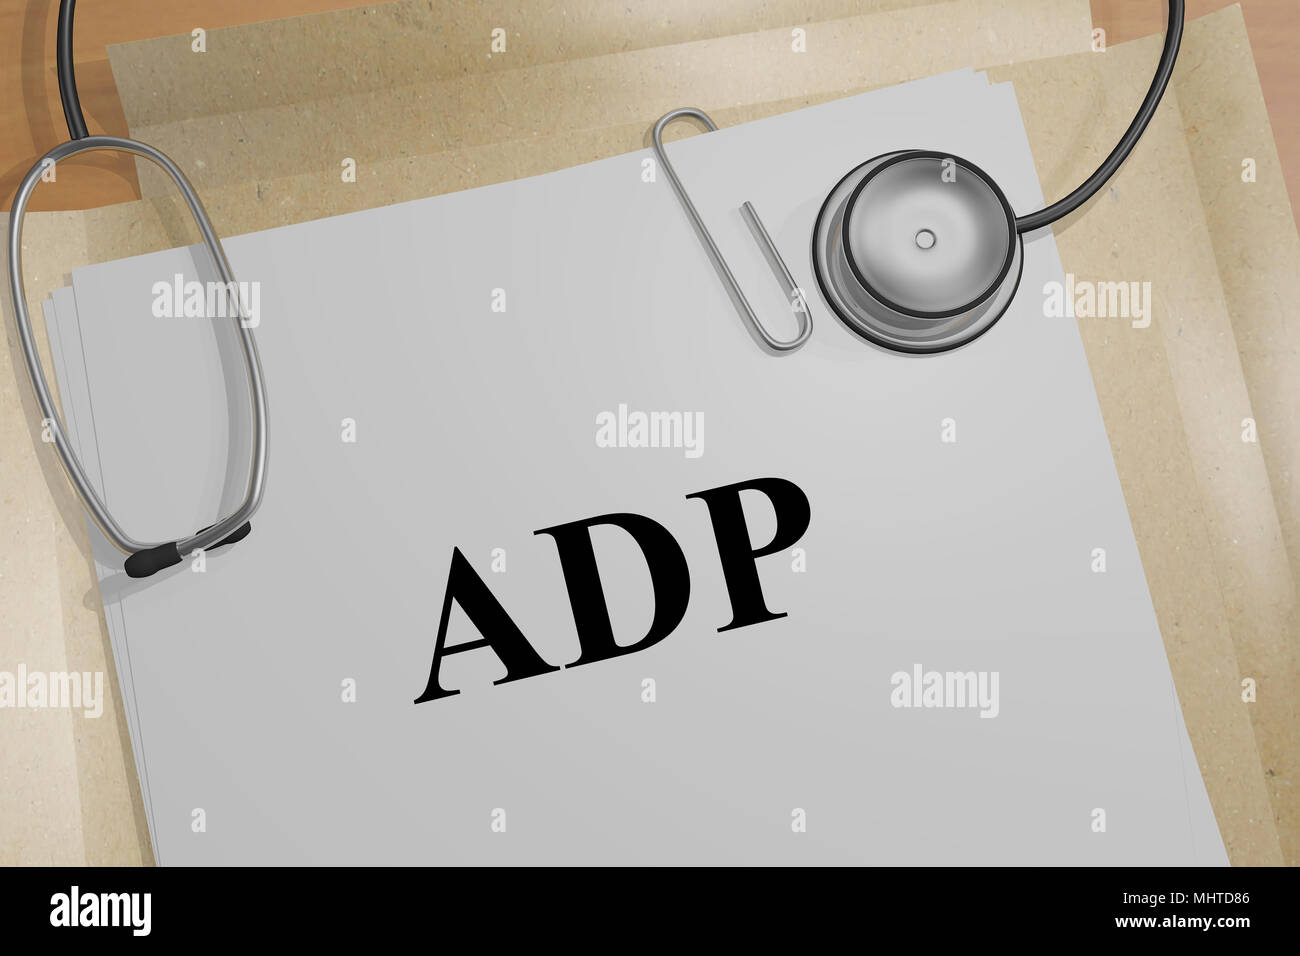 3D illustration of ADP title on a medical document Stock Photo